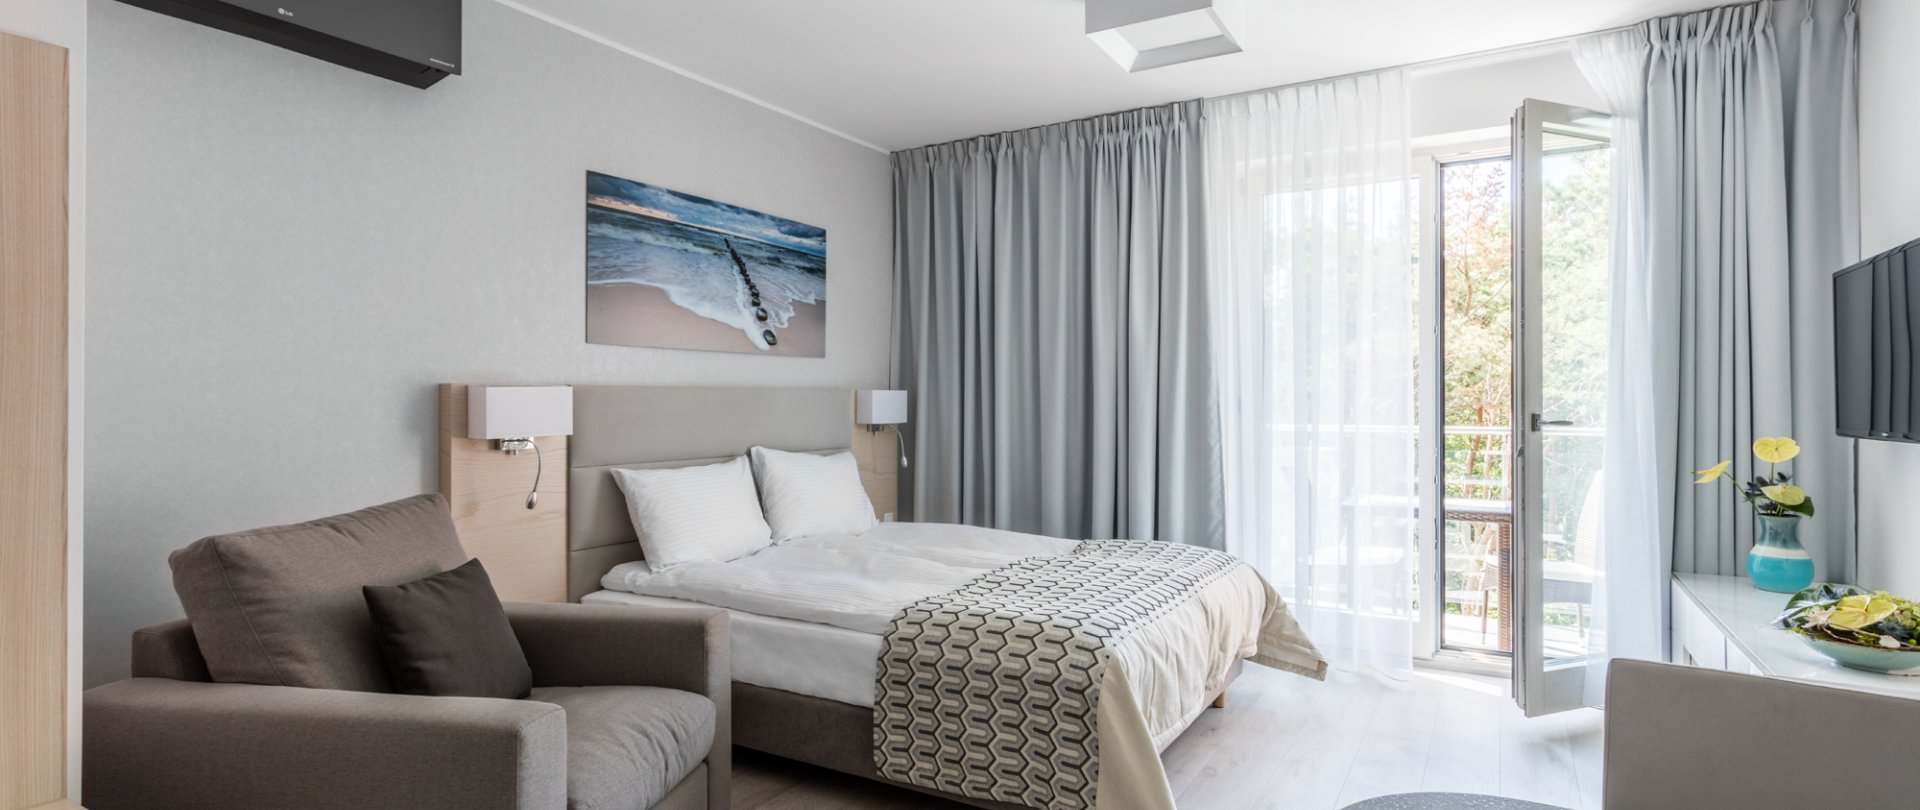 Single-room COMFORT APARTMENT for 1-2 guests